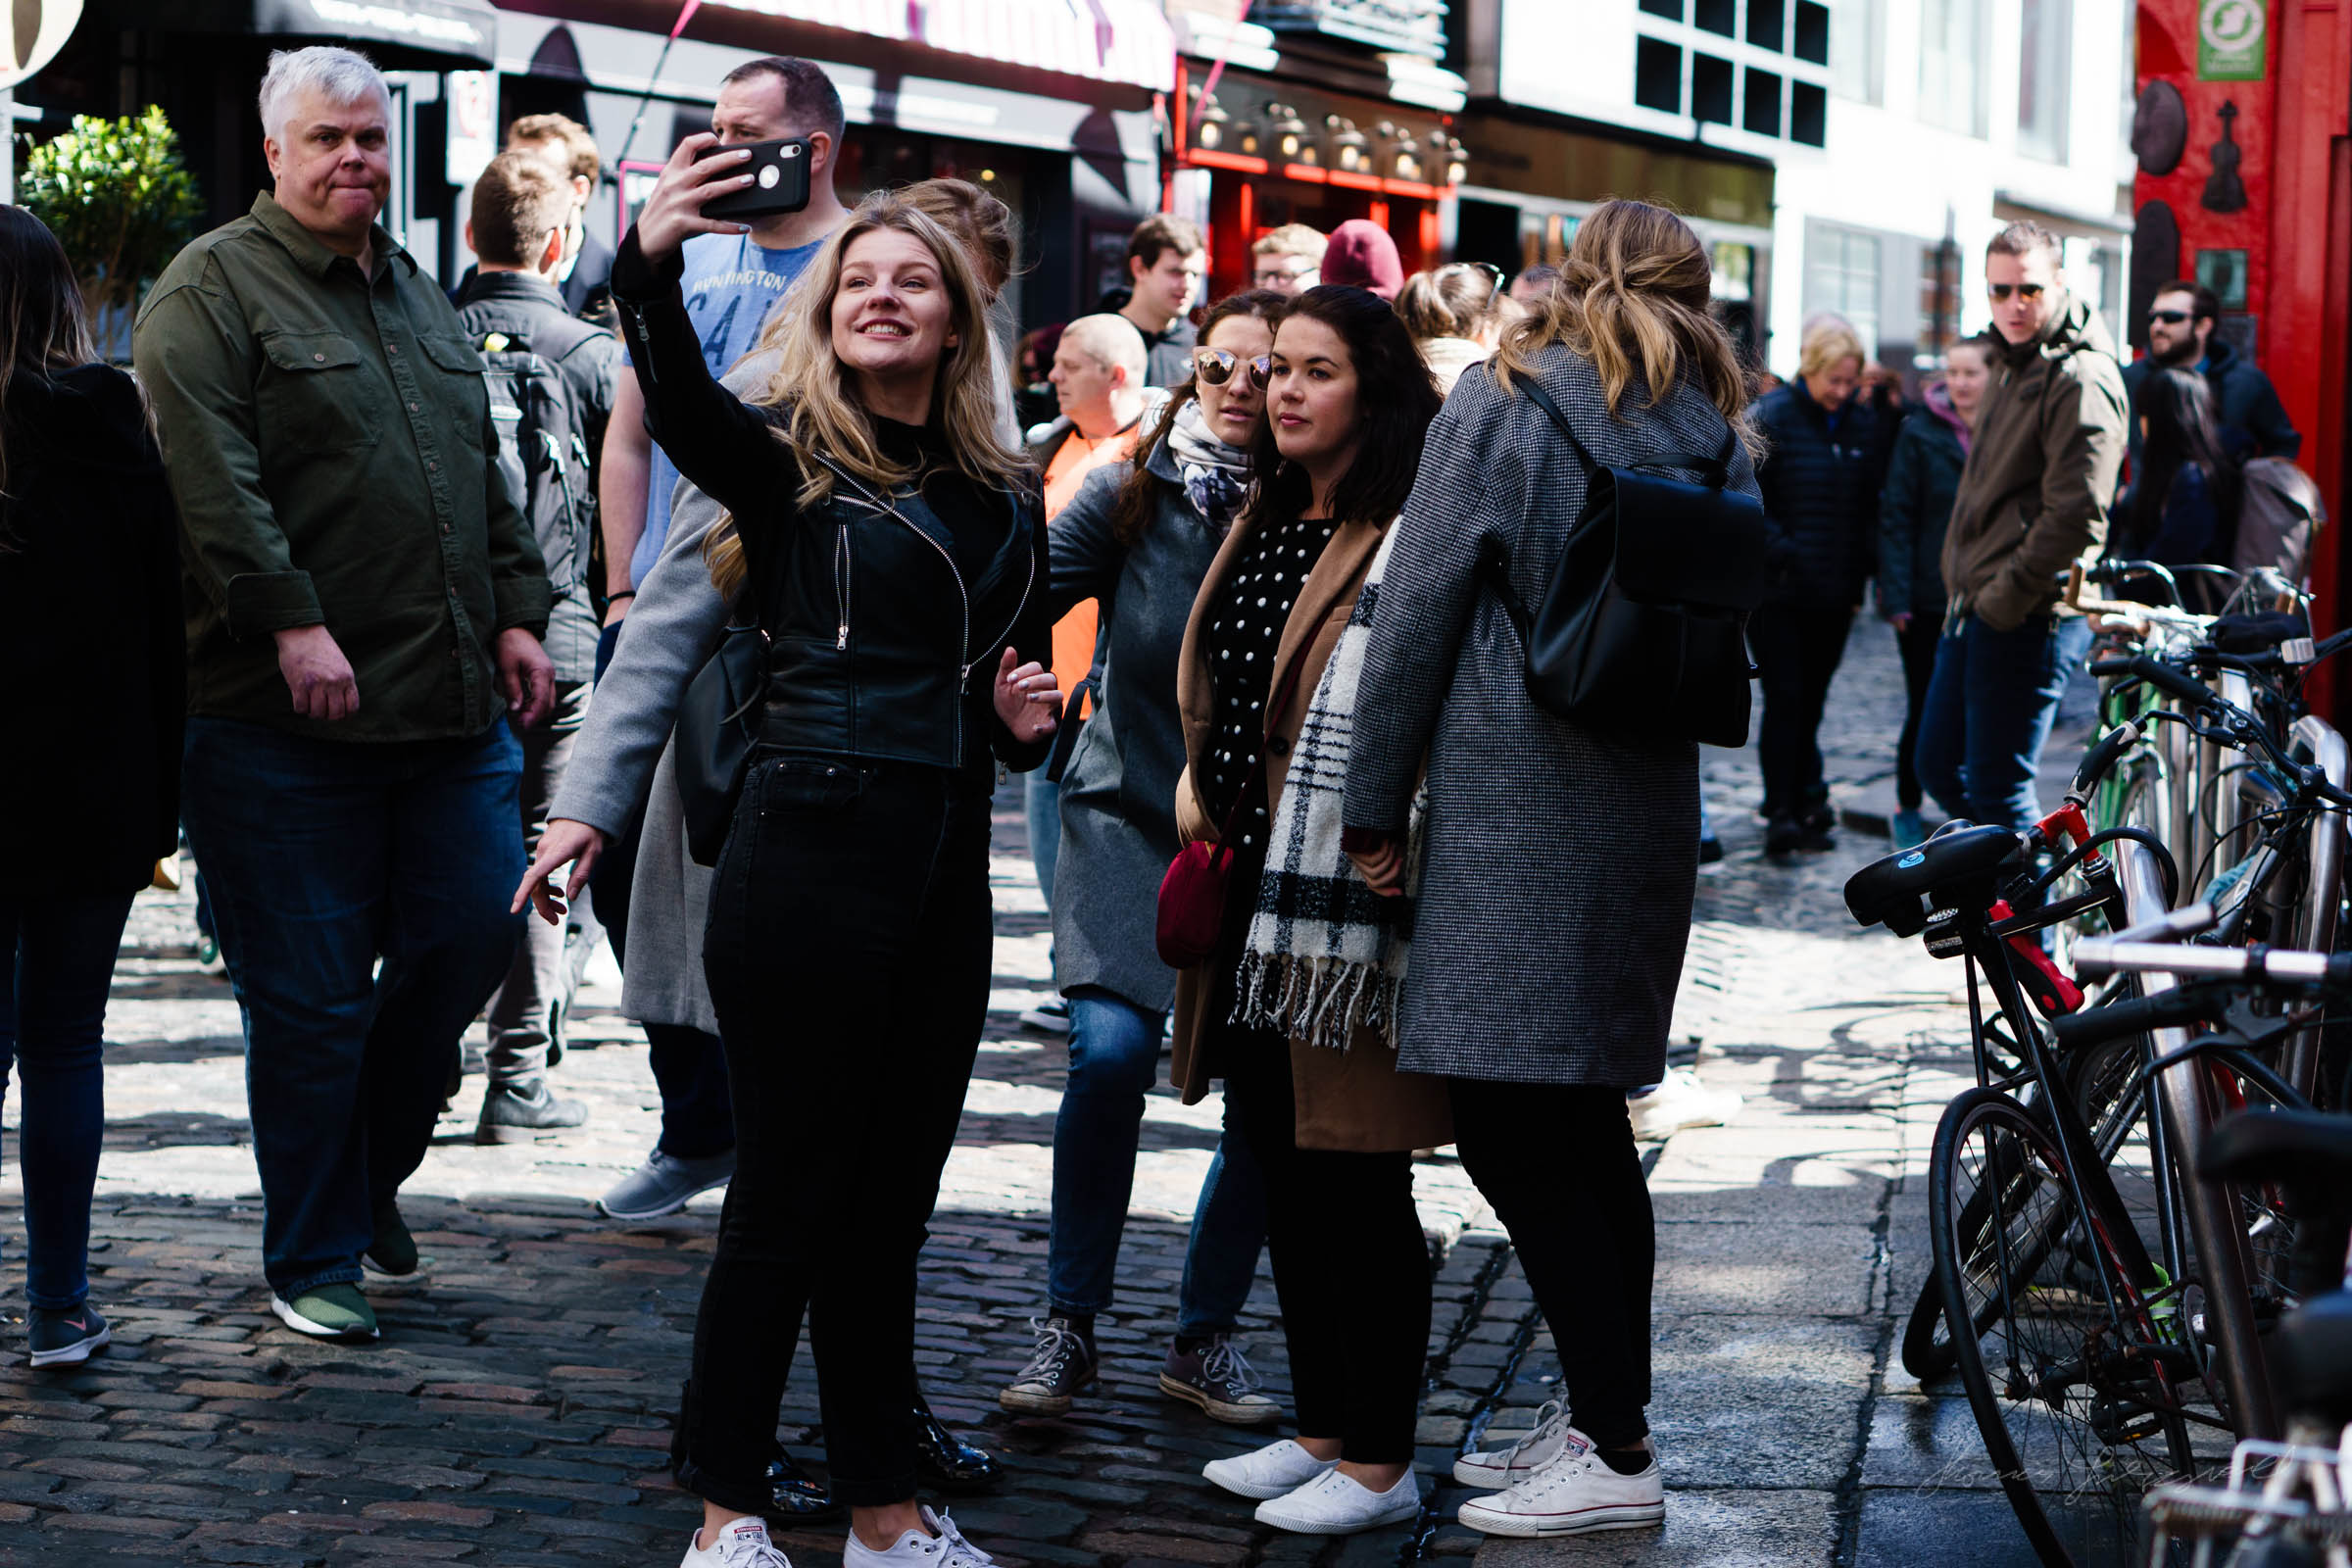 group taking selfies  - Street Photography in Dublin